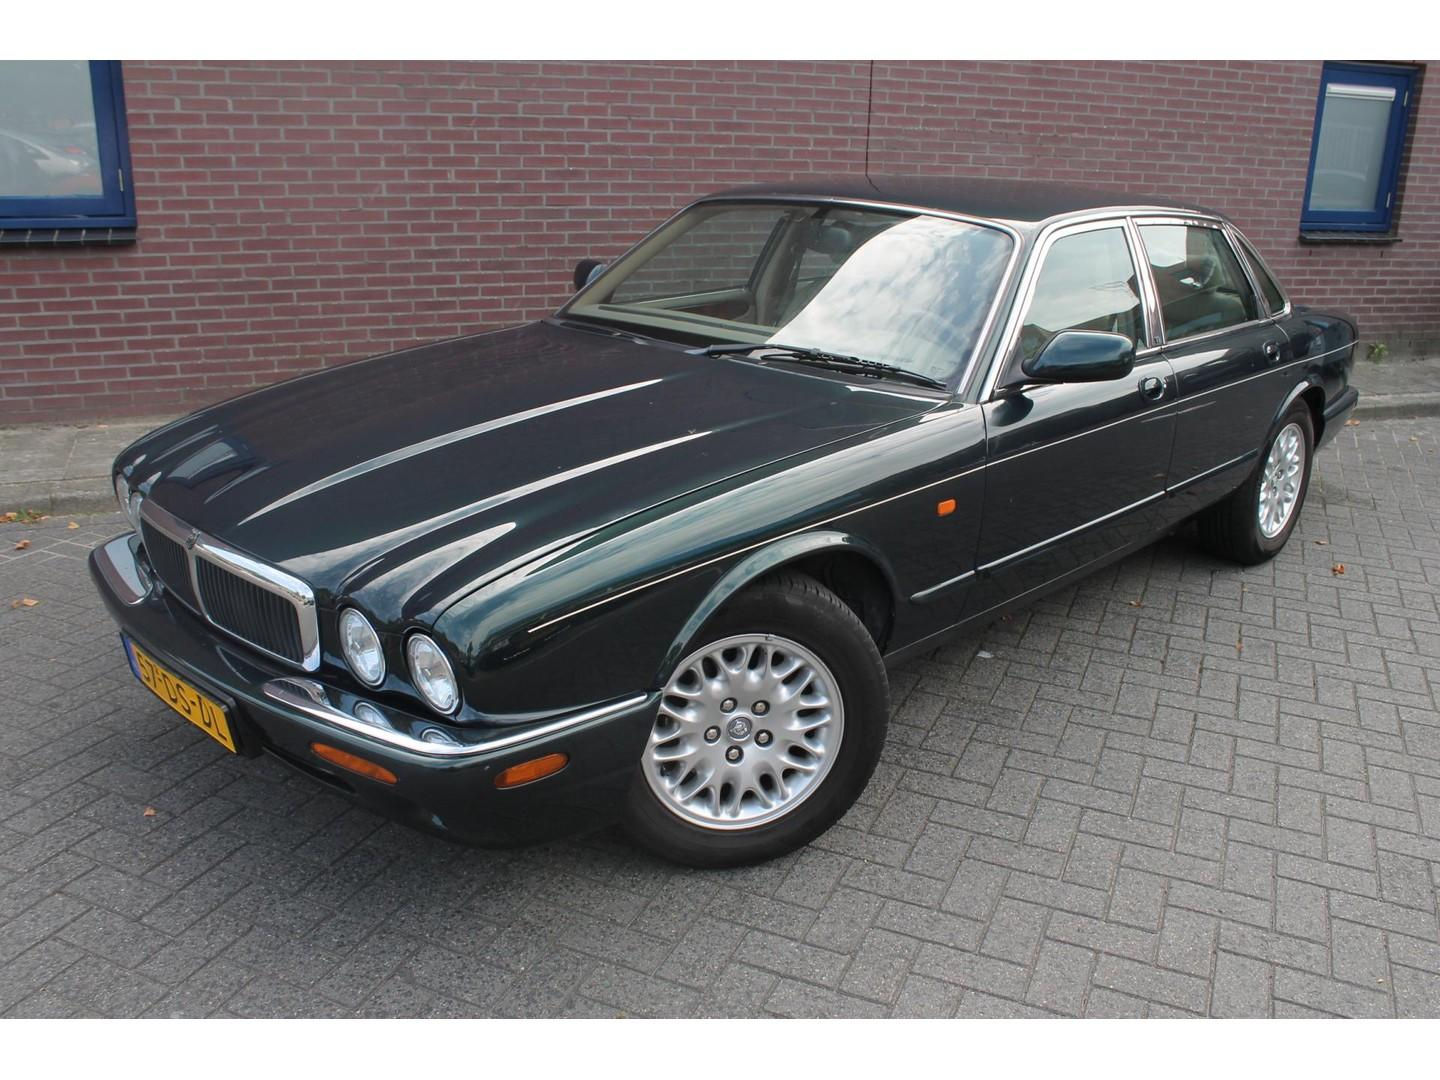 Jaguar Xj 3.2 v8 executive origineel nederlands